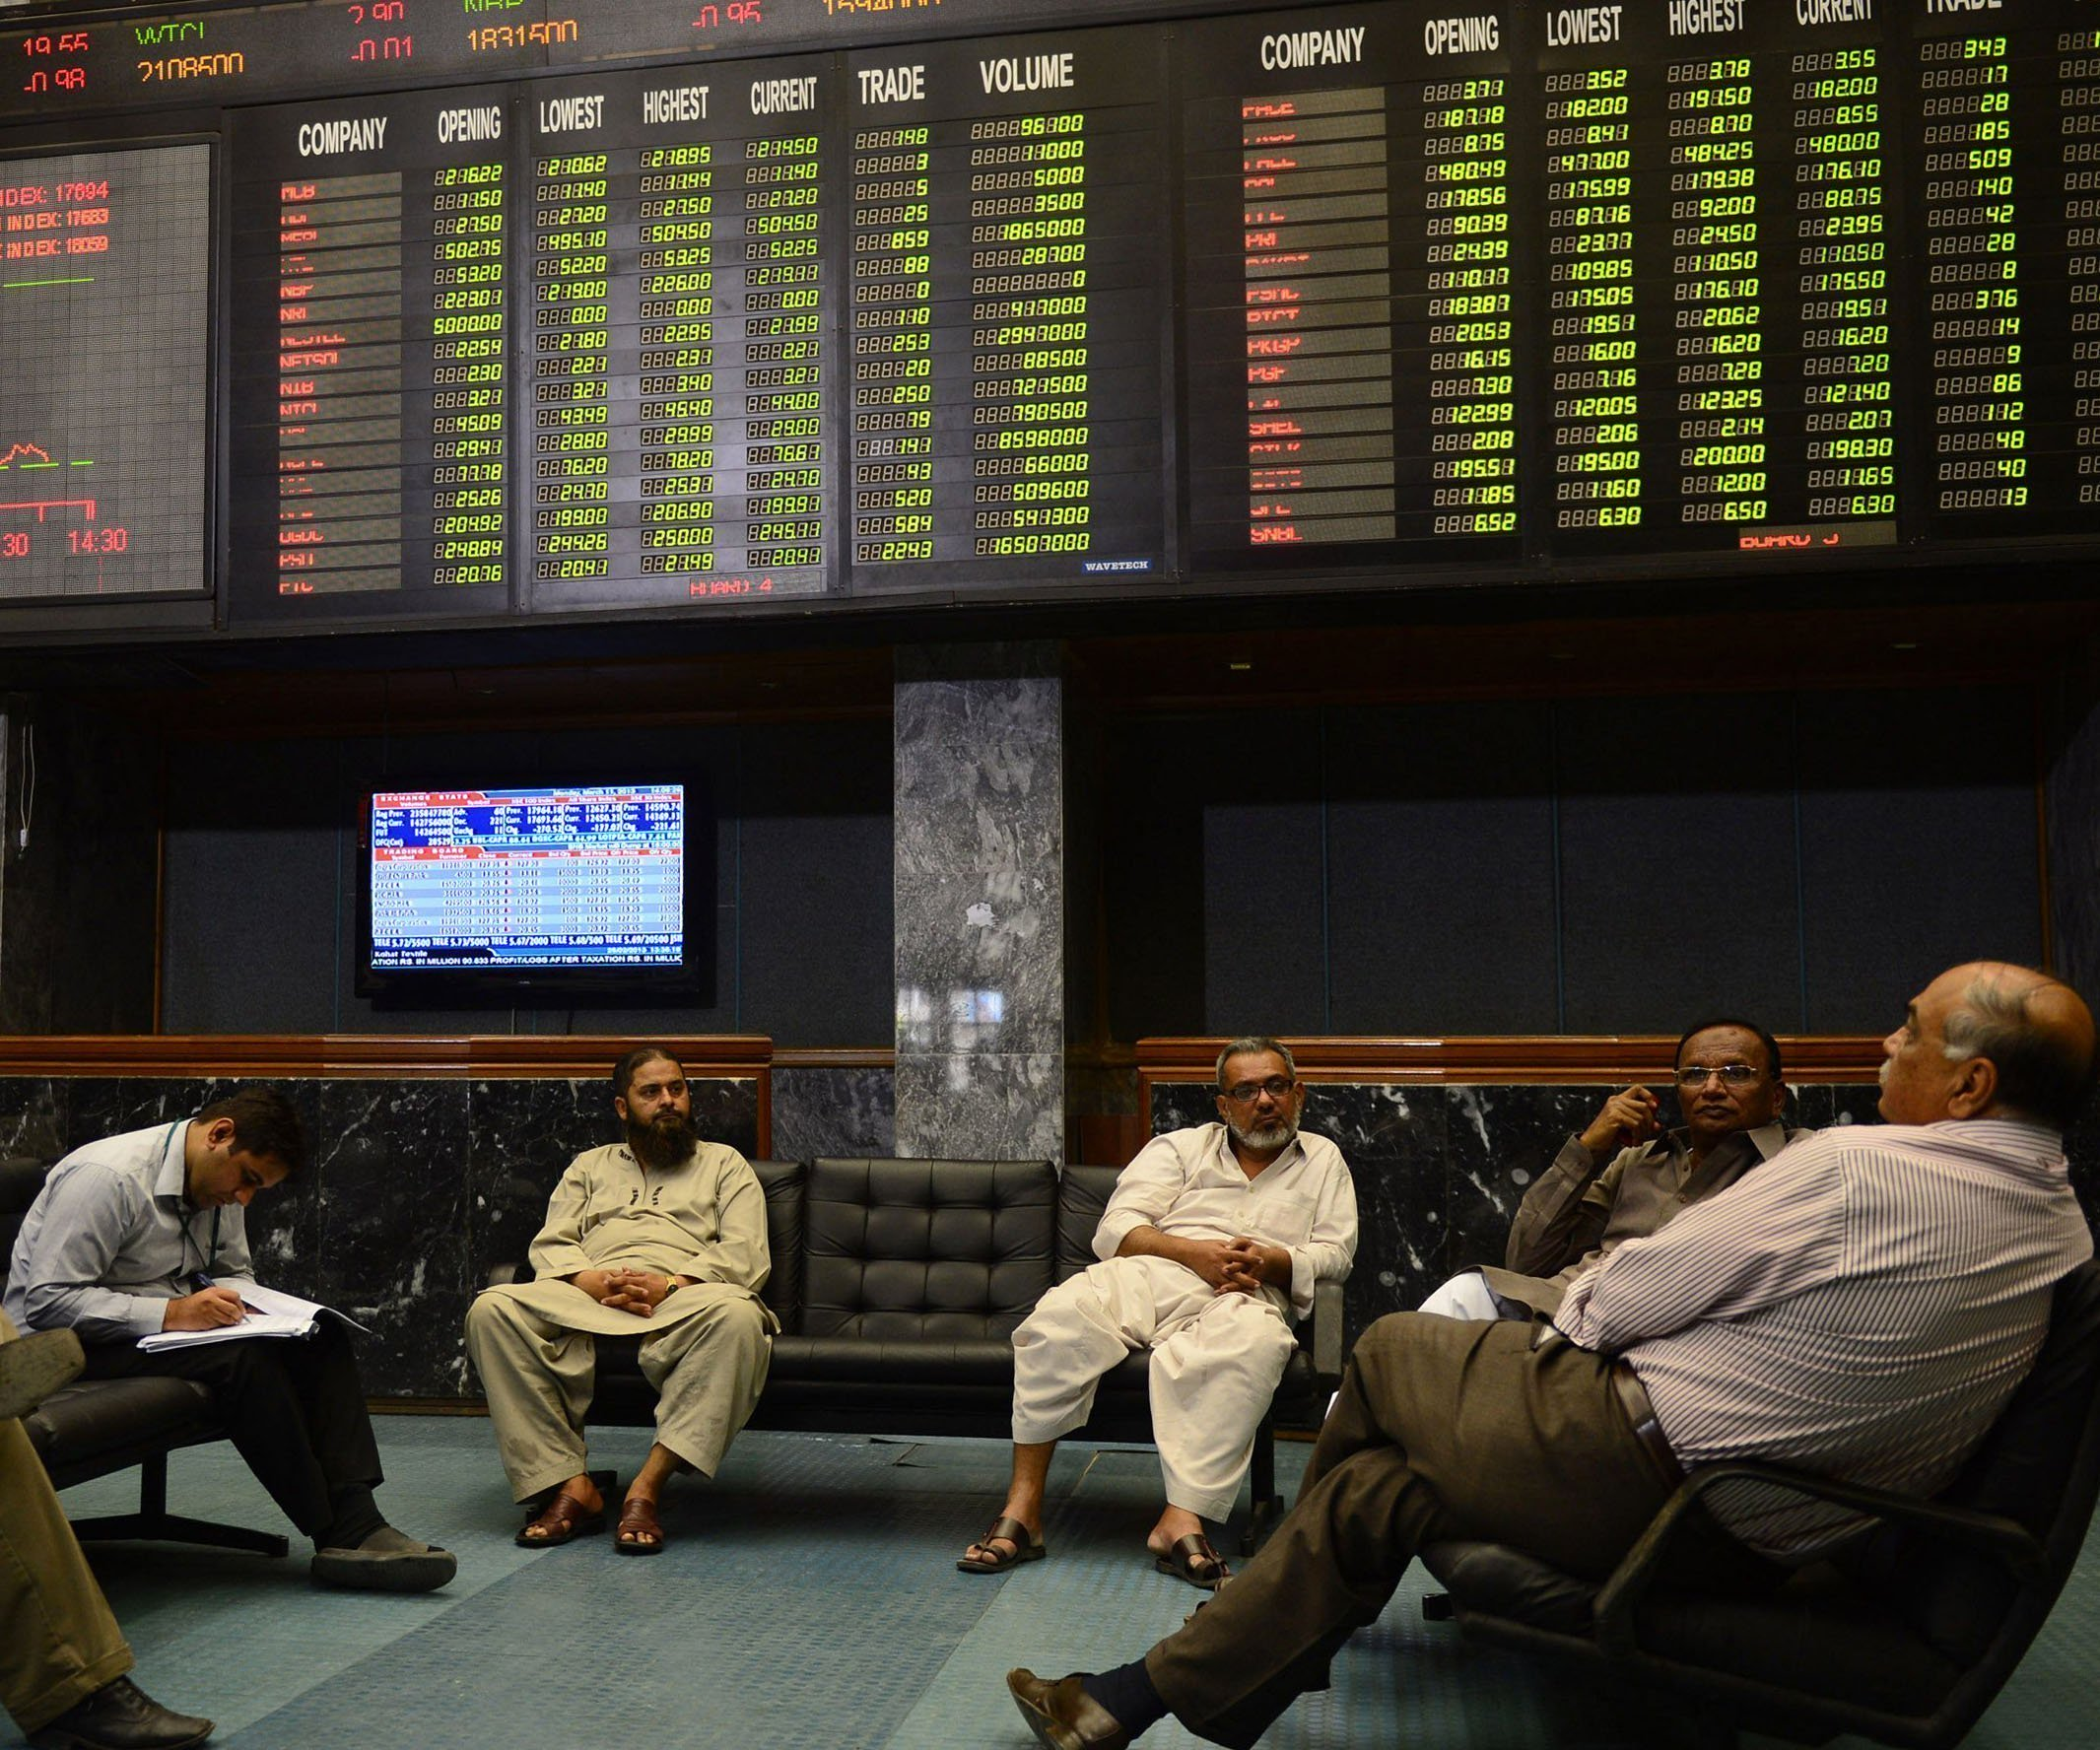 benchmark index rises 386 6 points to settle at 32 850 83 photo afp